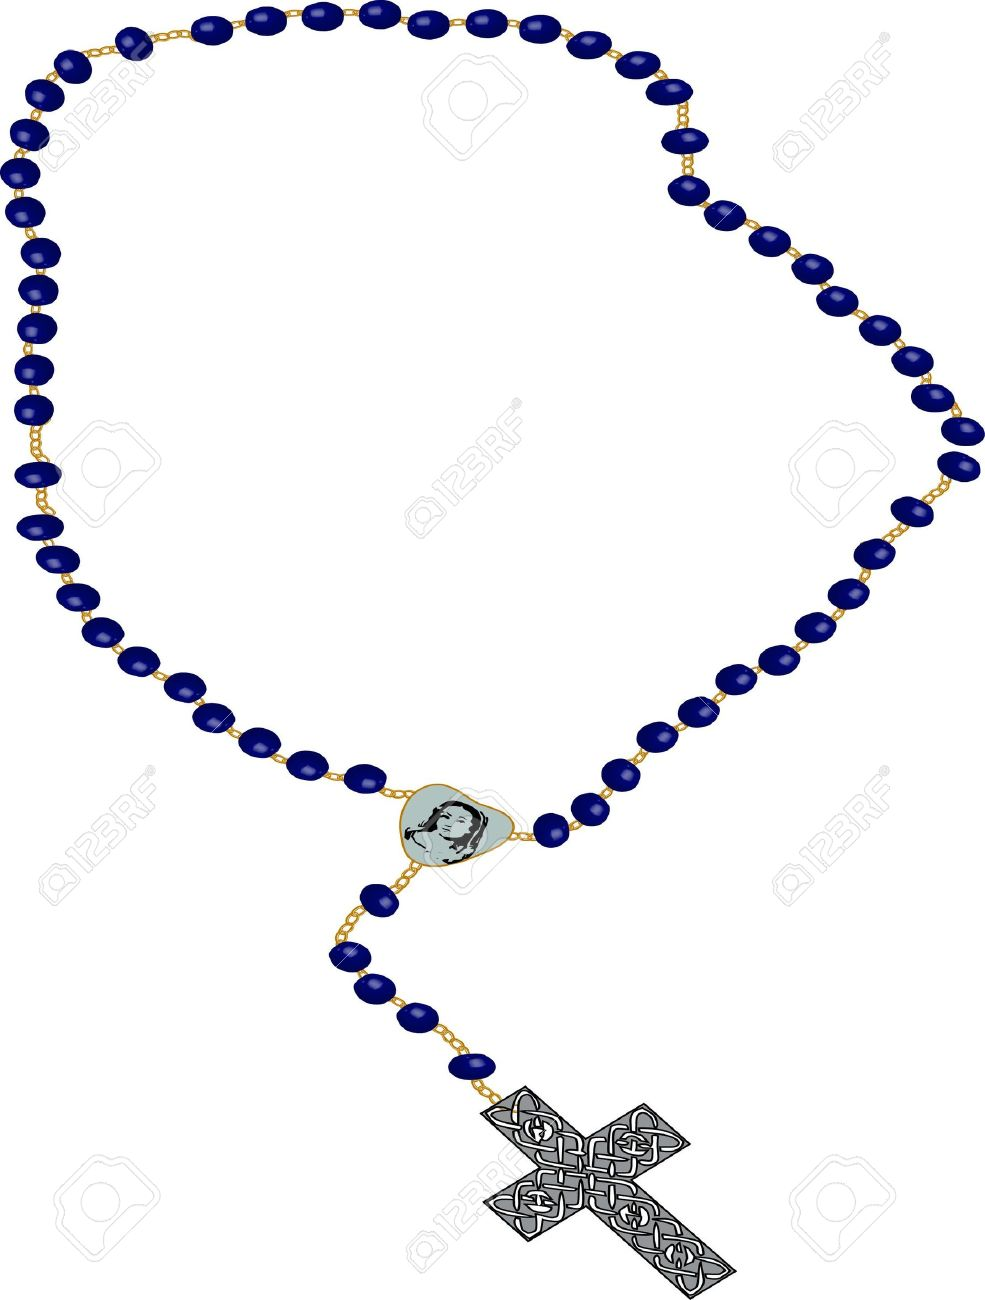 rosary clip art illustration on white background stock photo rh 123rf com rosary clipart free download rosary clipart free